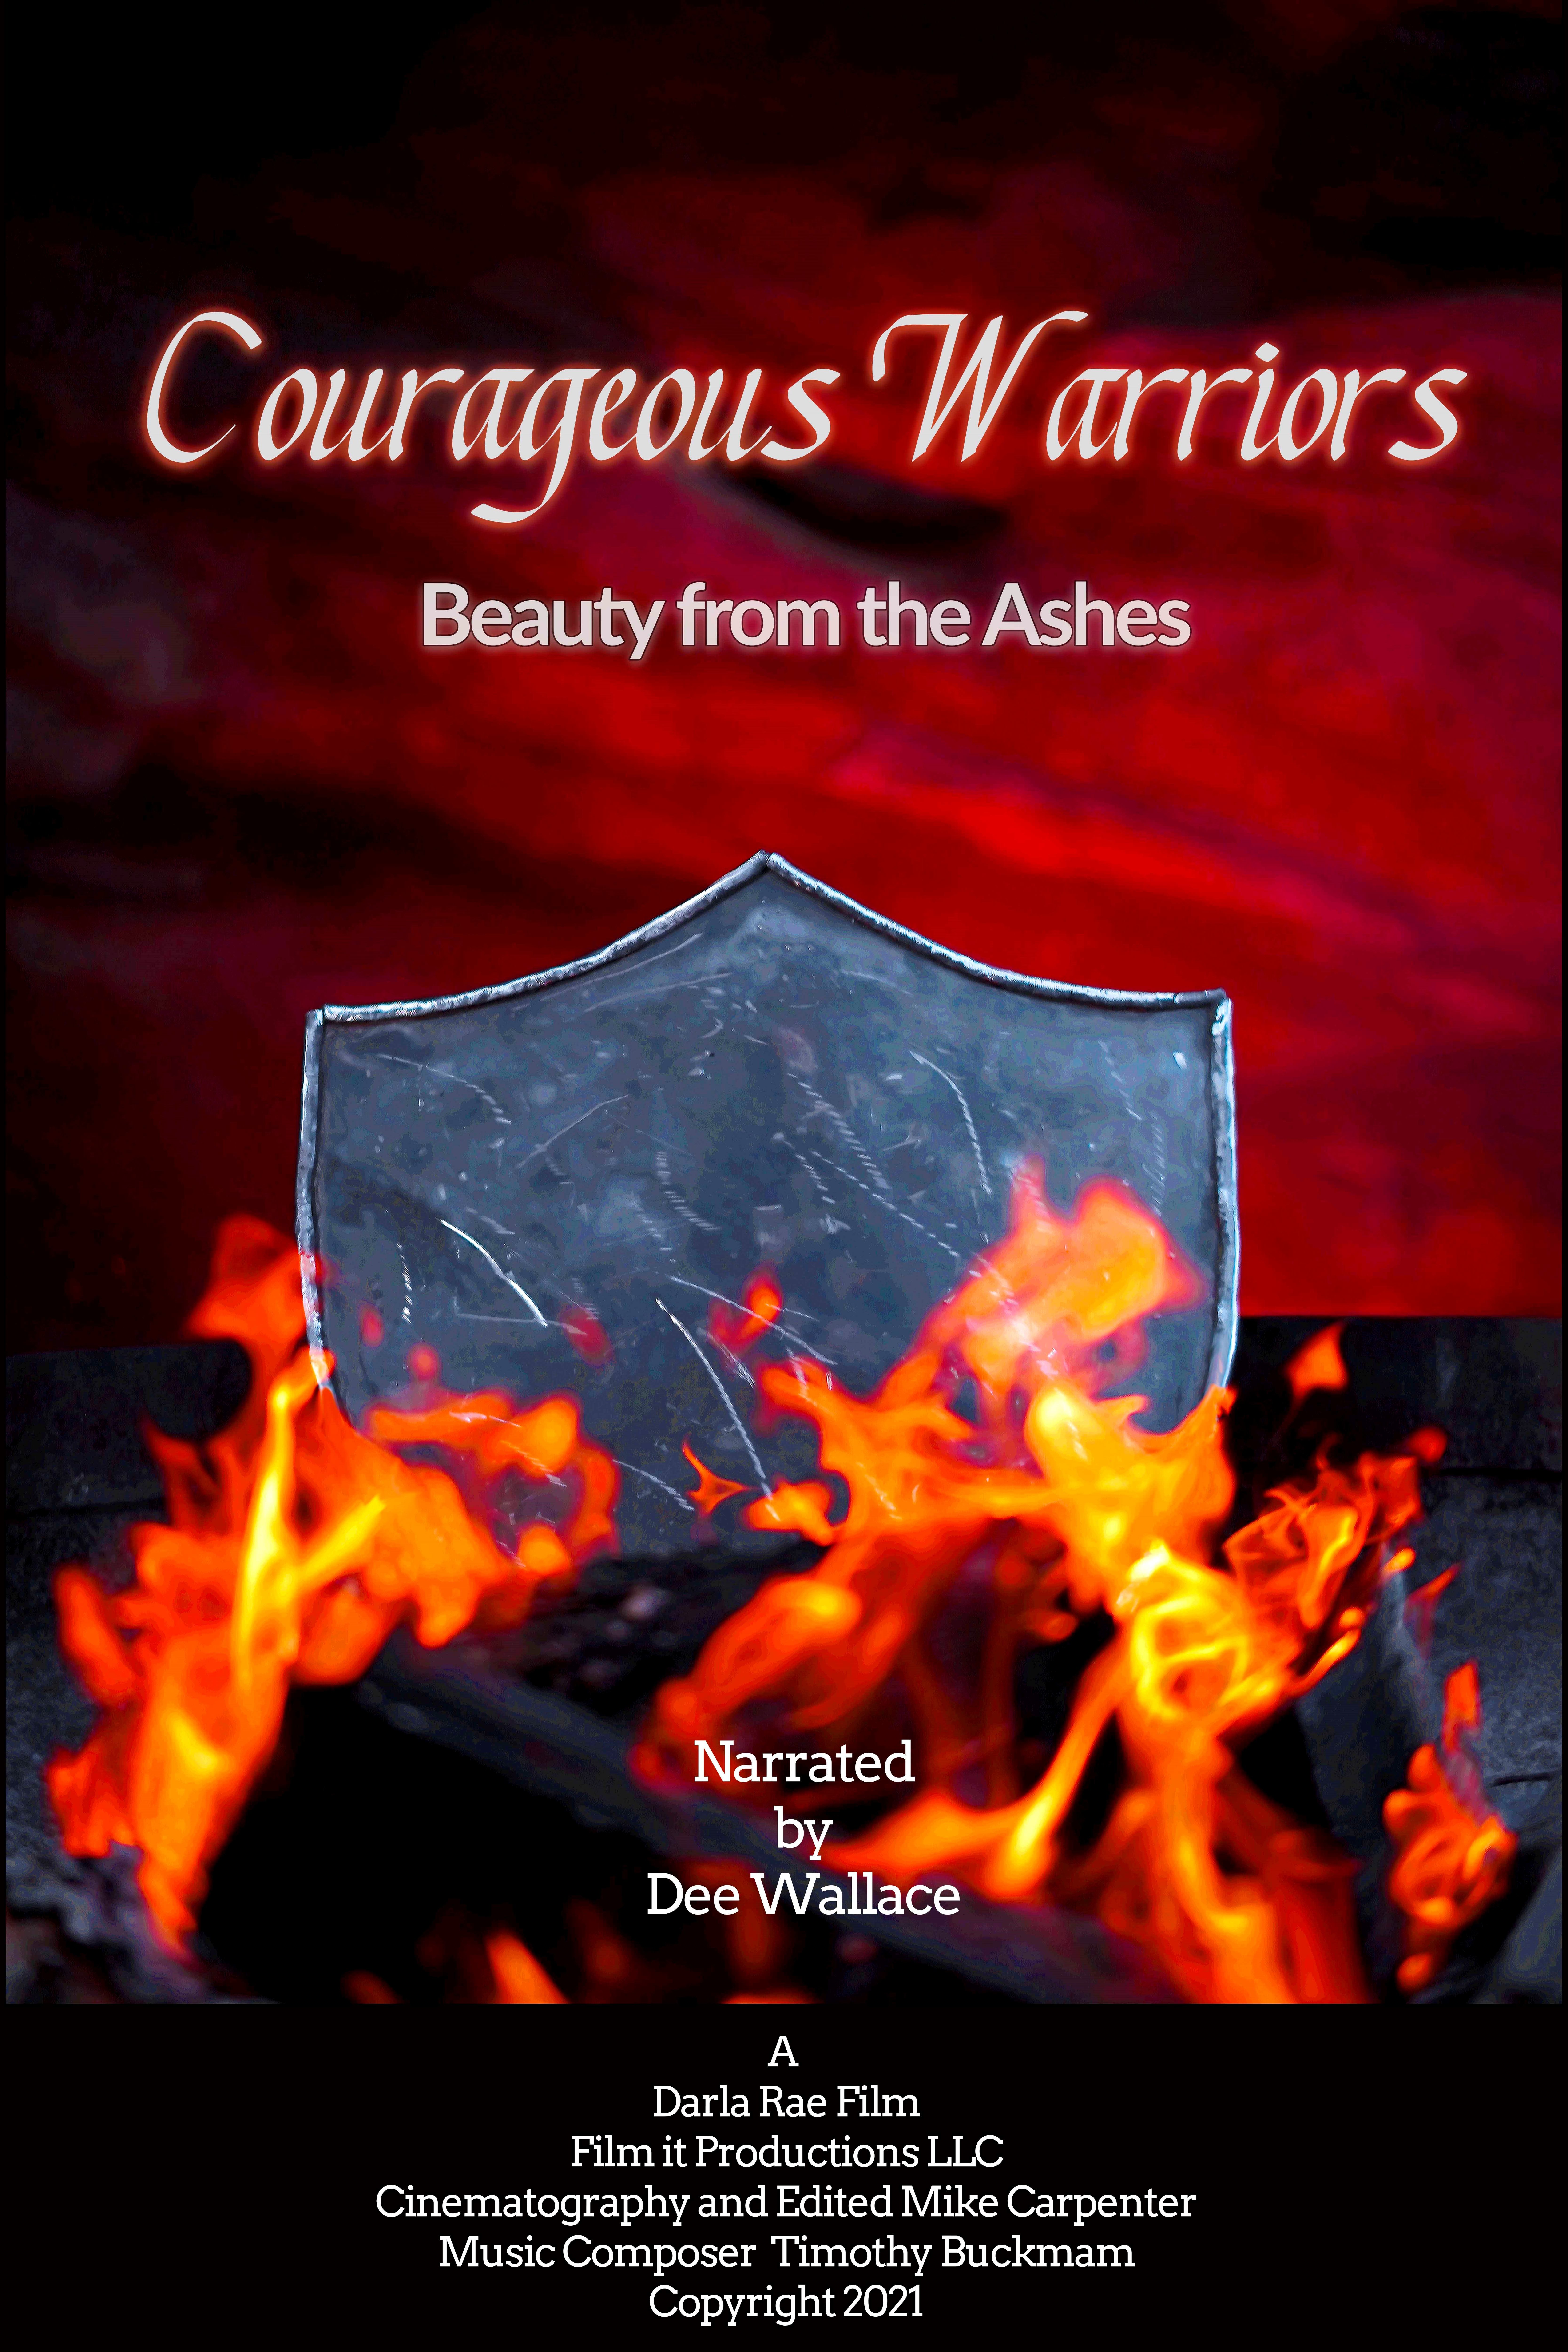 Dee Wallace Lends Her Voice to Breast Cancer Survivors in Courageous Warriors - Beauty from The Ashes